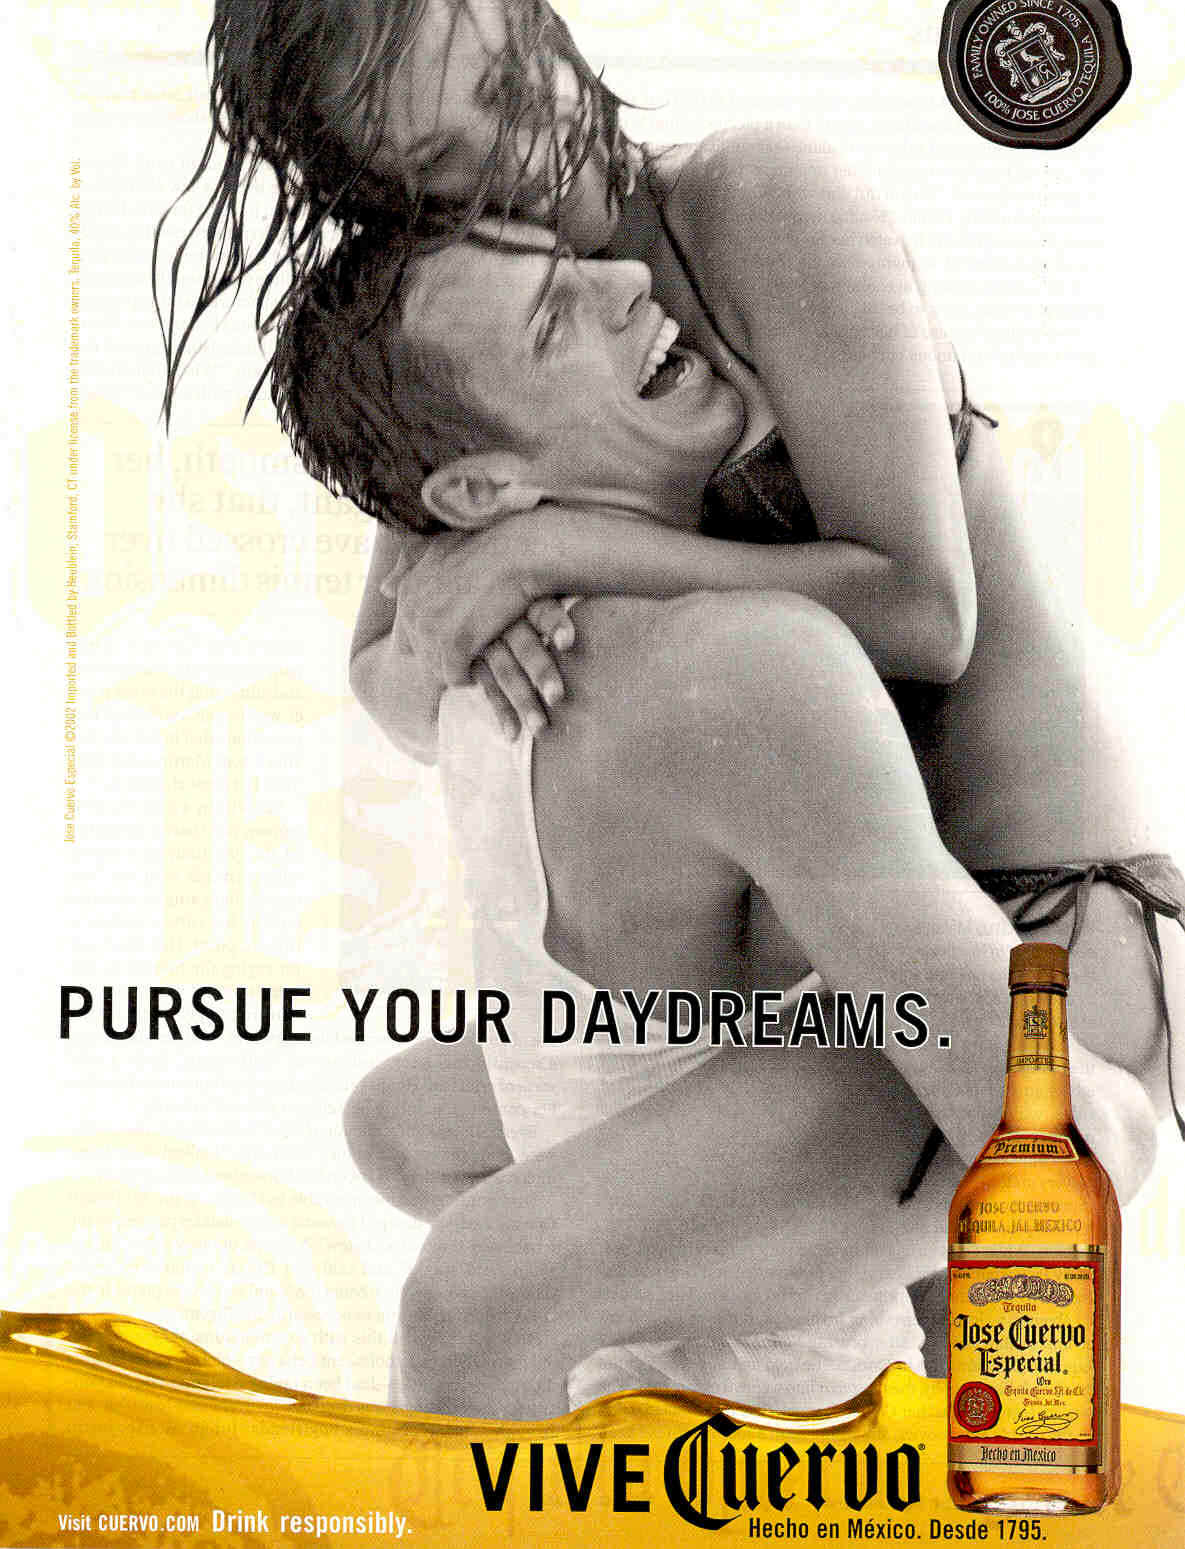 Affective Conditioning Alcohol Ad